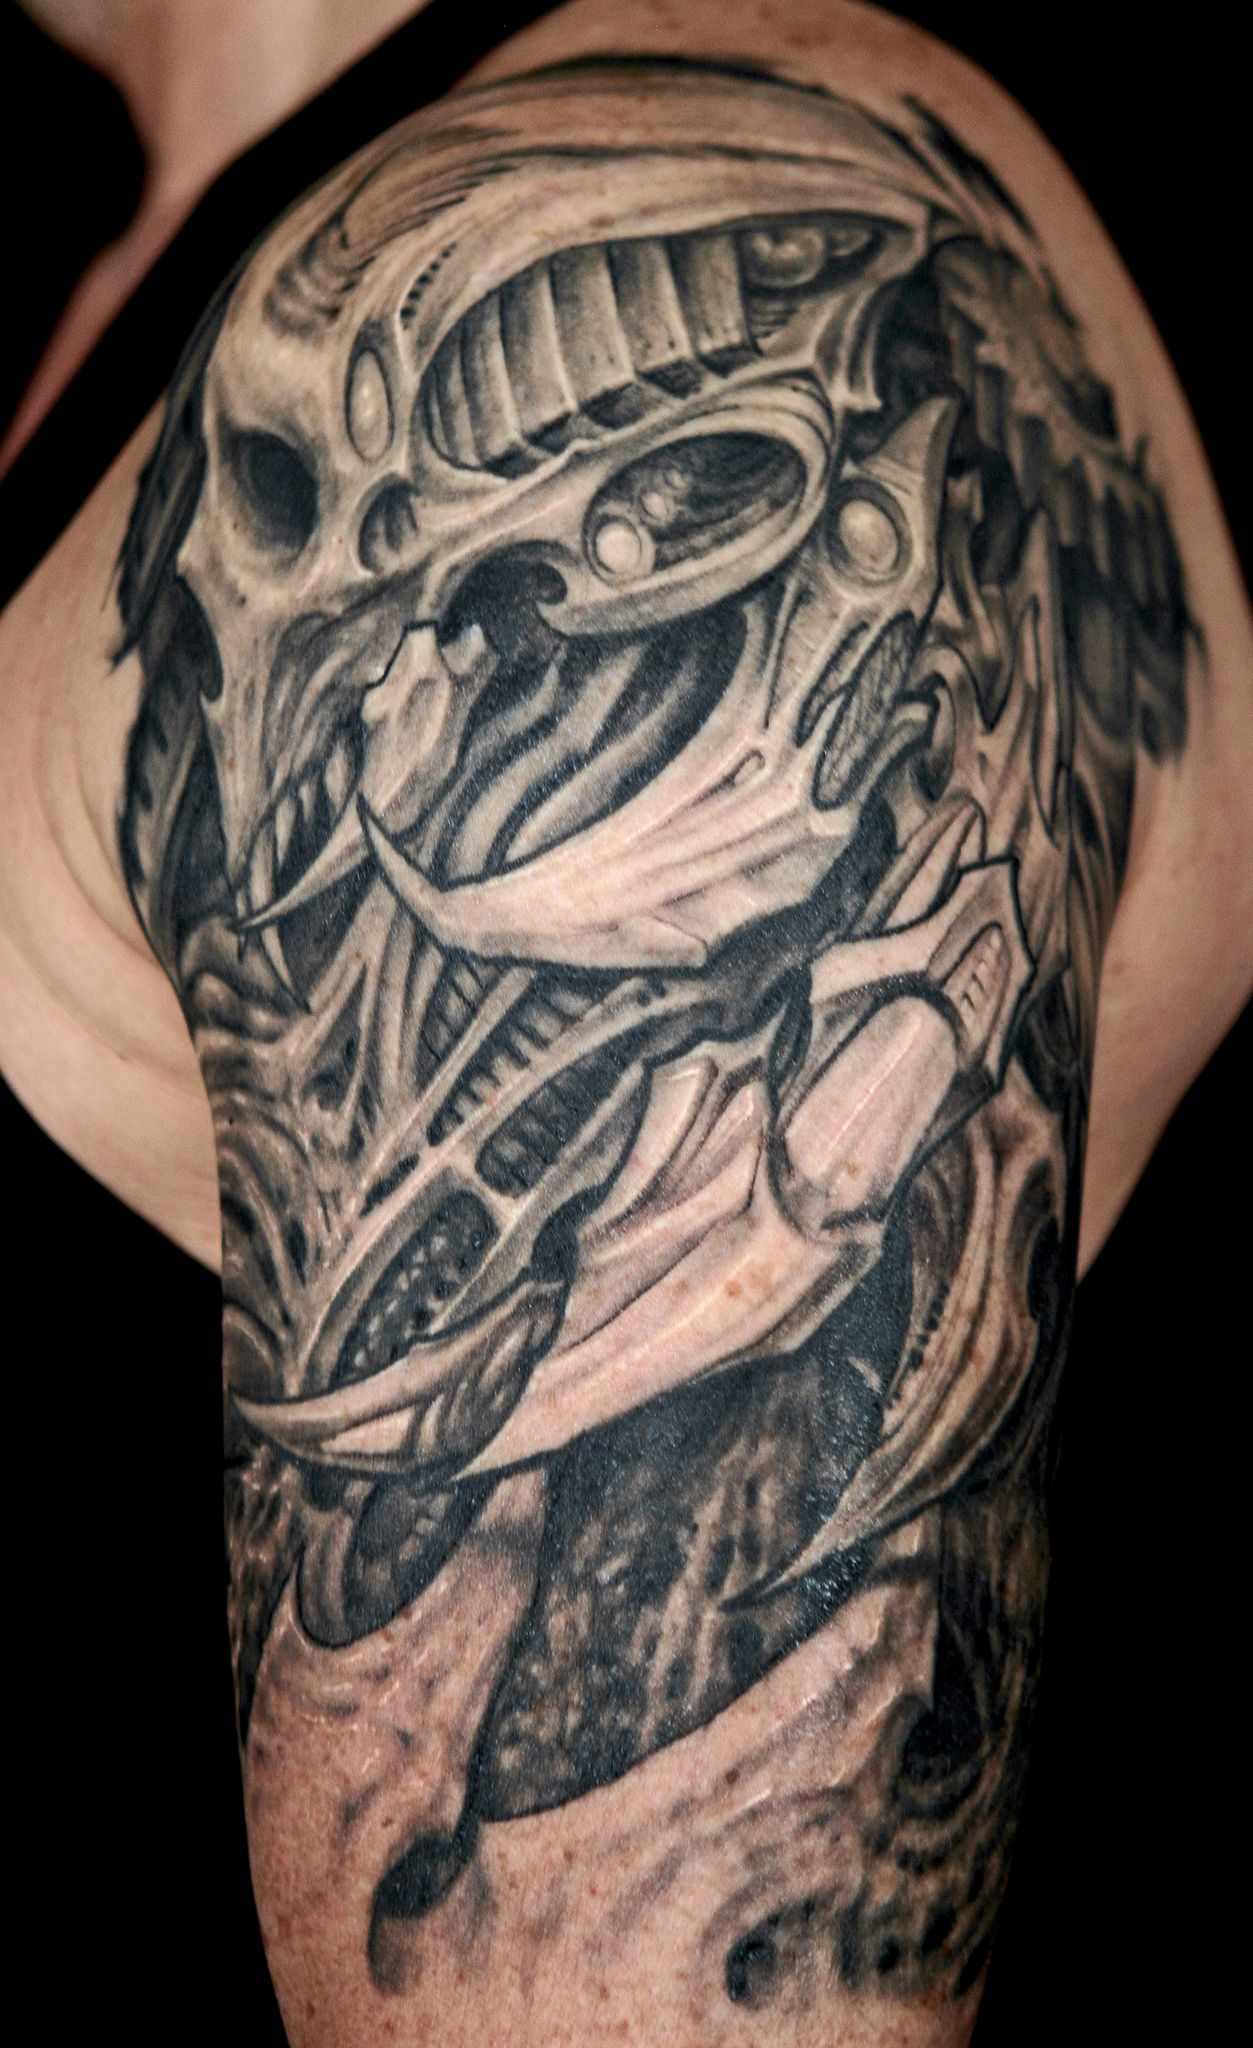 25 Amazing Biomechanical Tattoos Design Biomechanical Tattoo Design Biomechanical Tattoo Tattoos